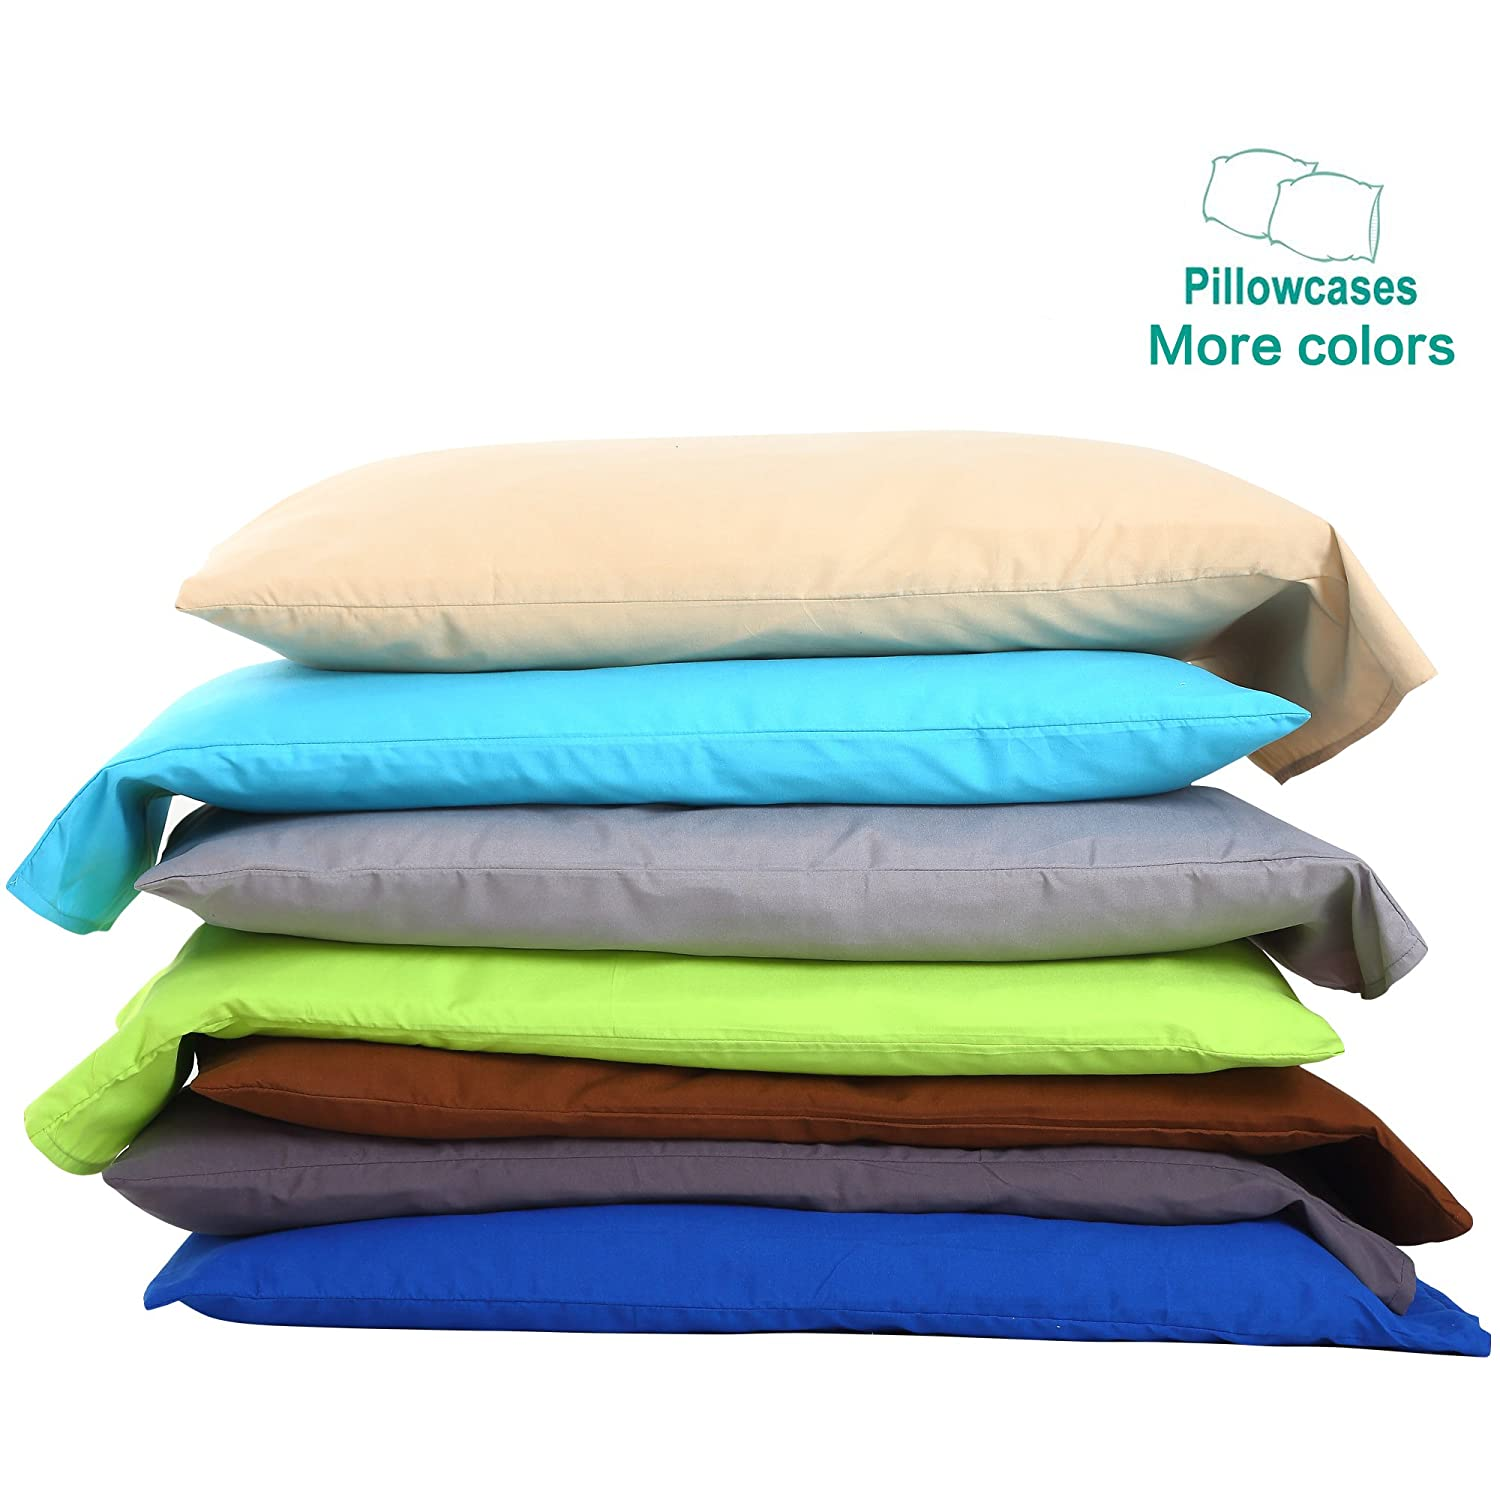 NTBAY 100% Brushed Microfiber Pillowcases Set of 4